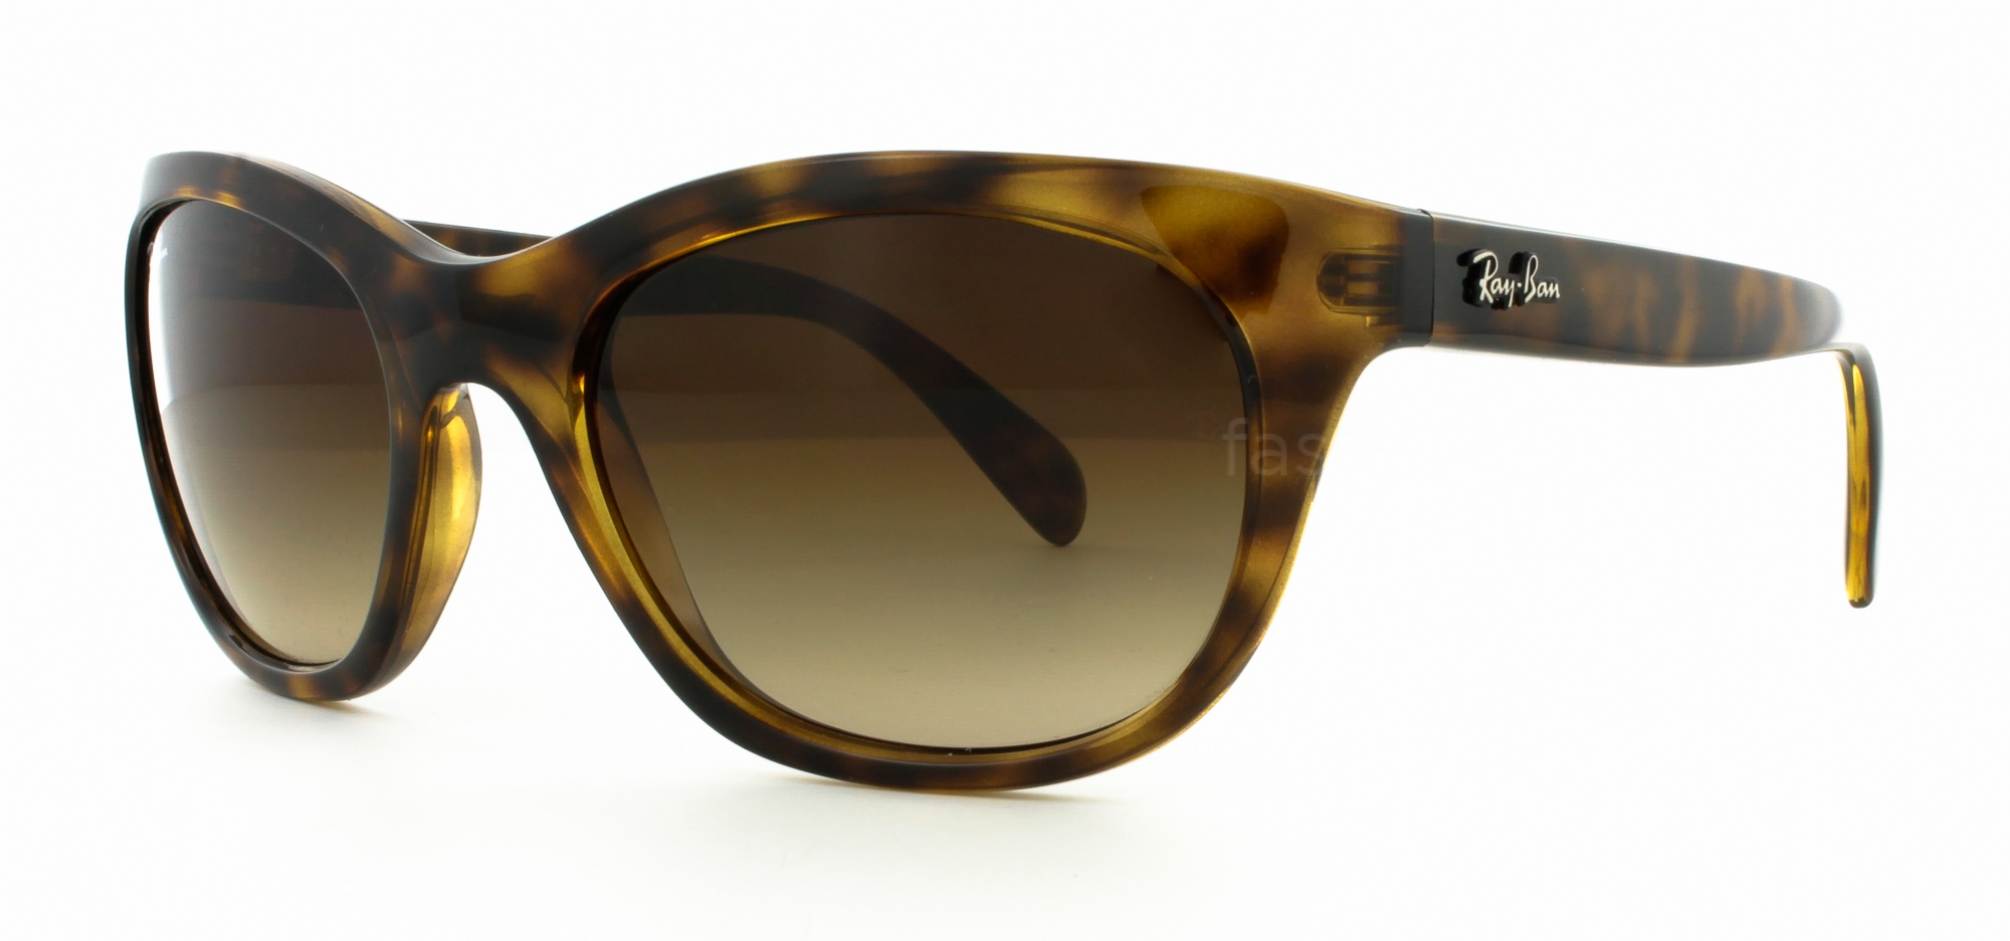 Ray Ban Eyeglass Frames Made In China : Ray Ban Wayfarer Eyeglasses Made In China